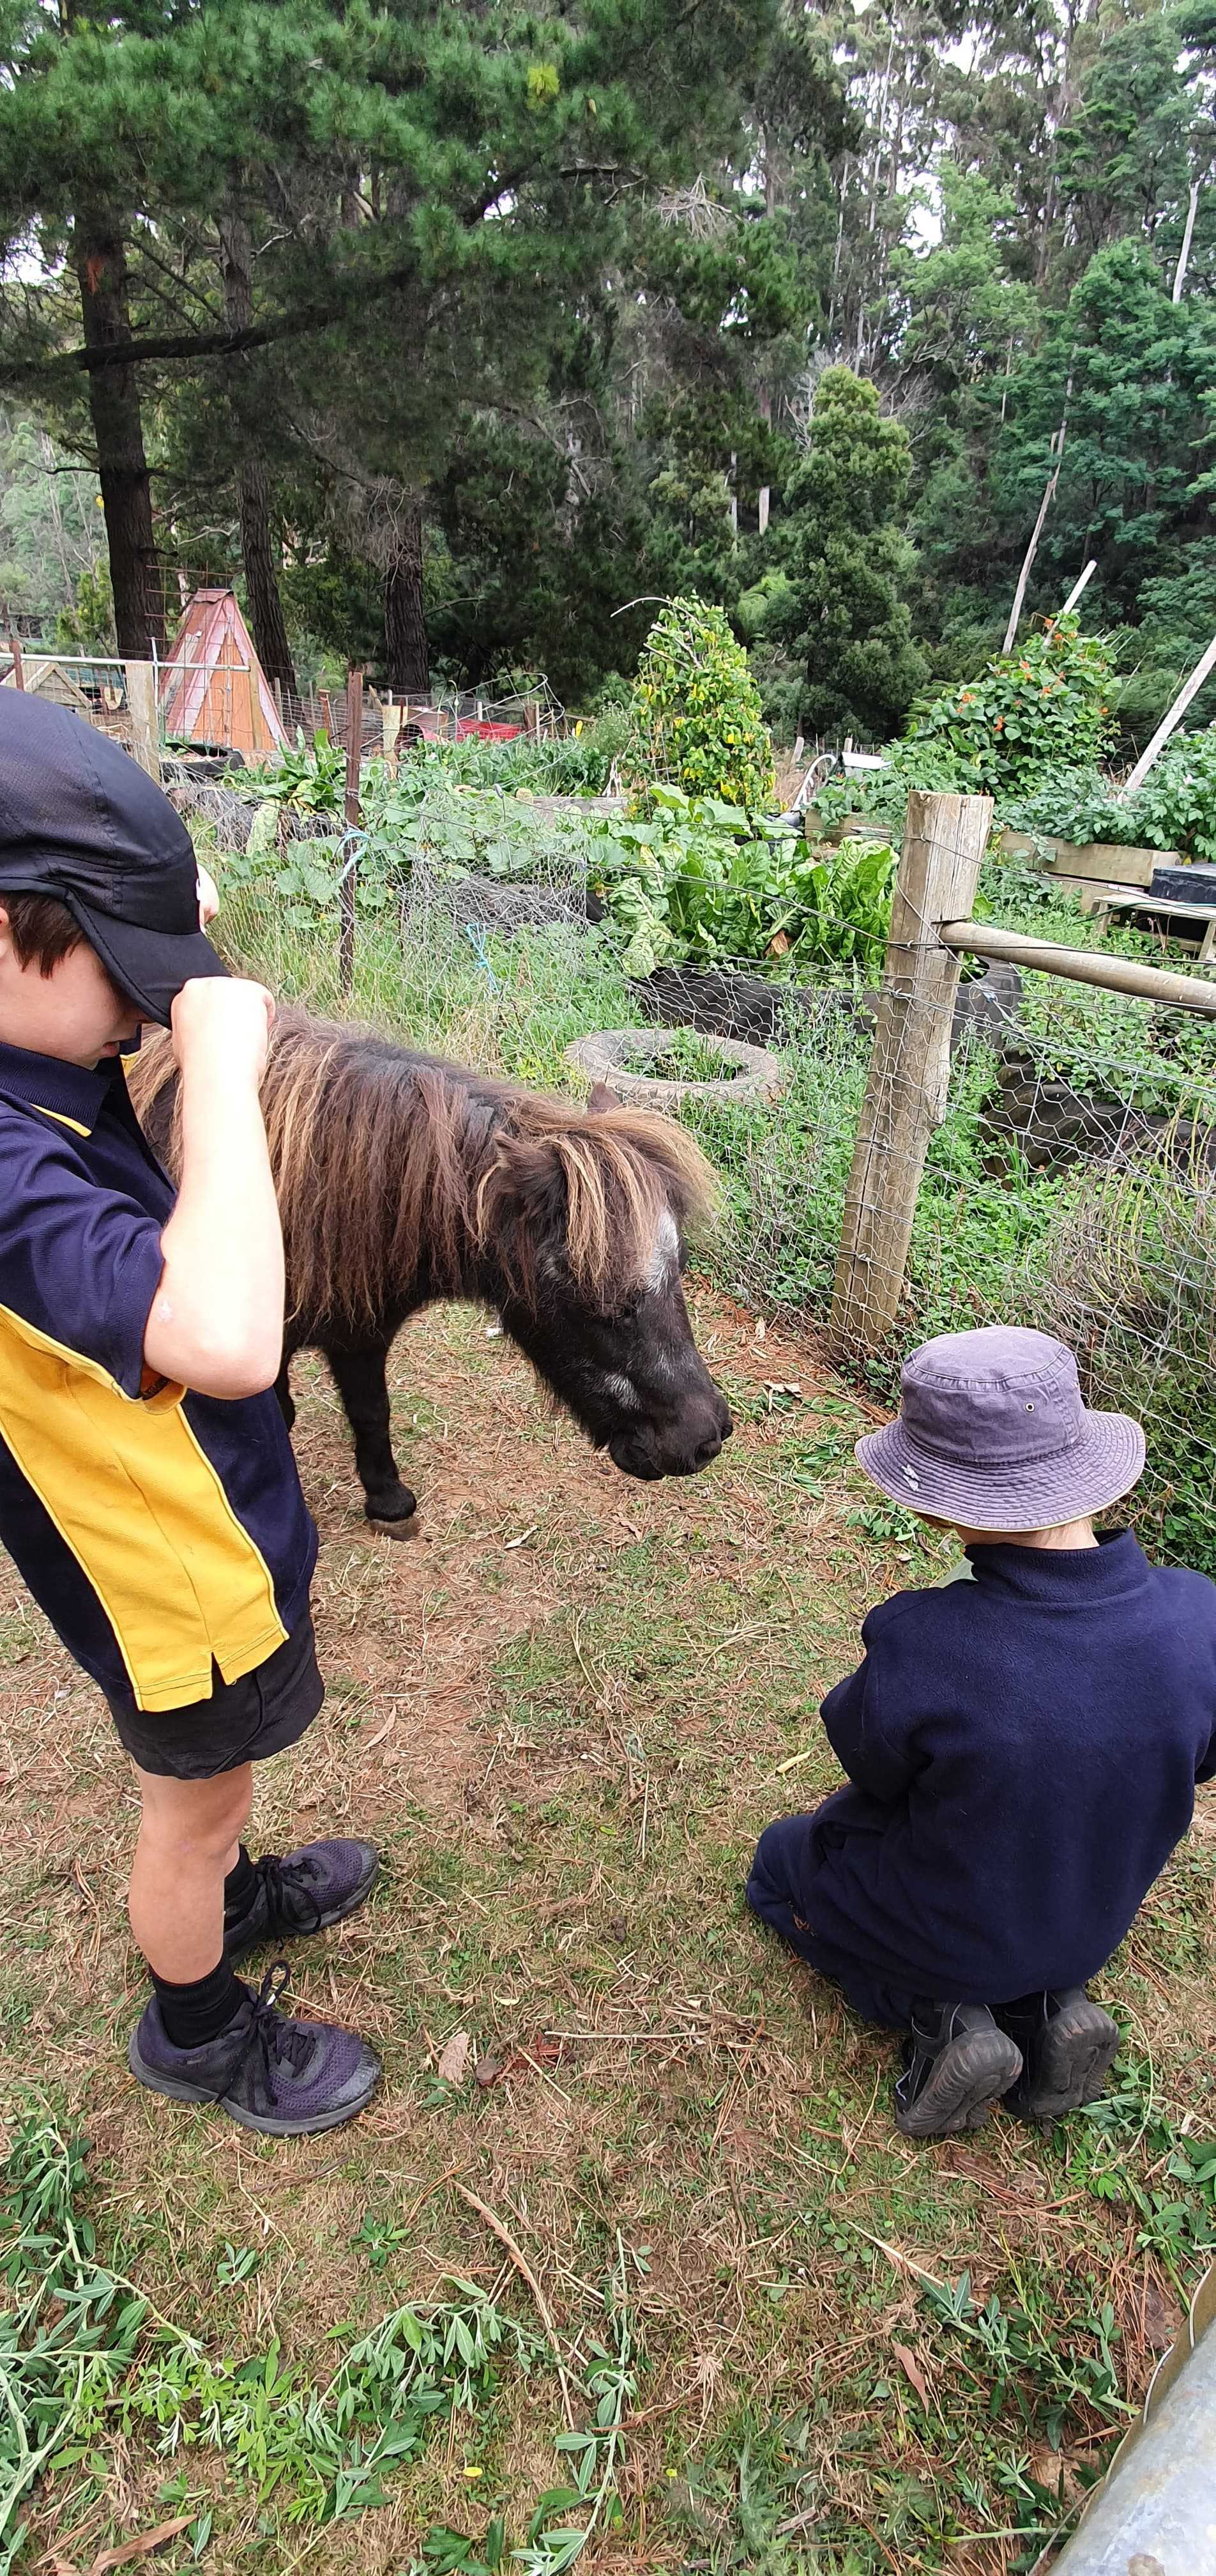 Christian and Tyson with pony